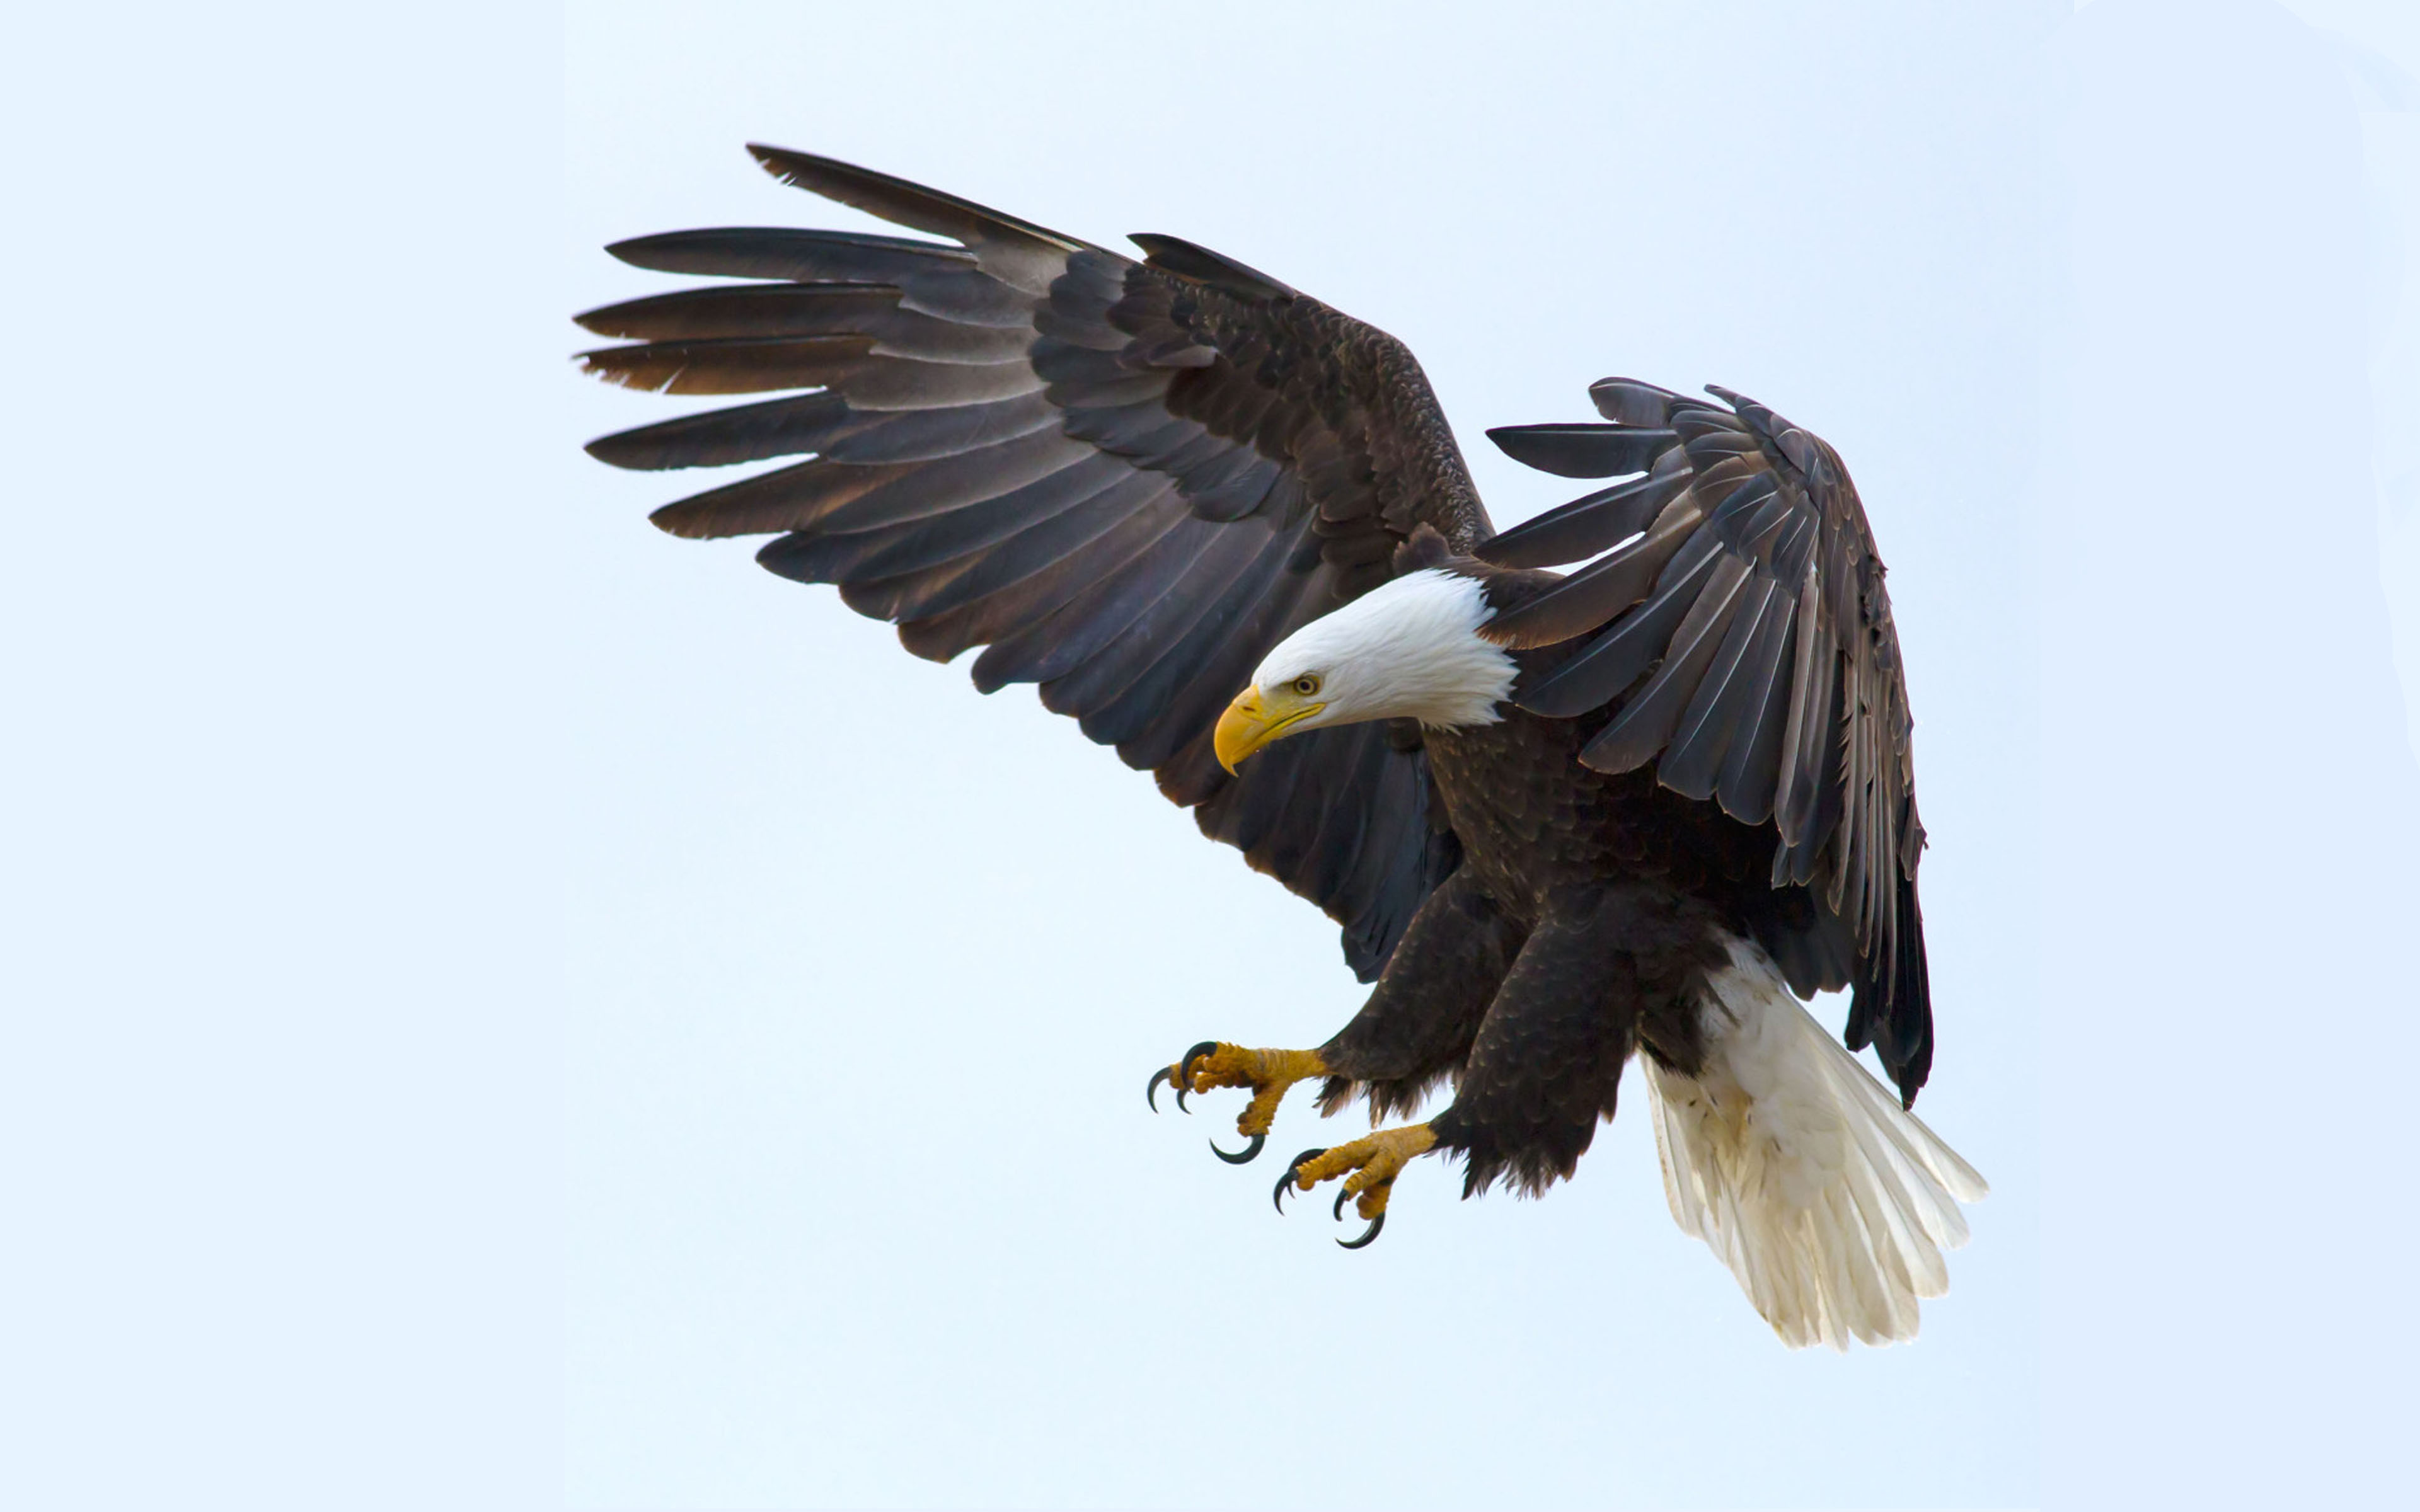 Native American Wallpaper Iphone Bald Eagle Wallpaper For Your Cell Phone And Laptop